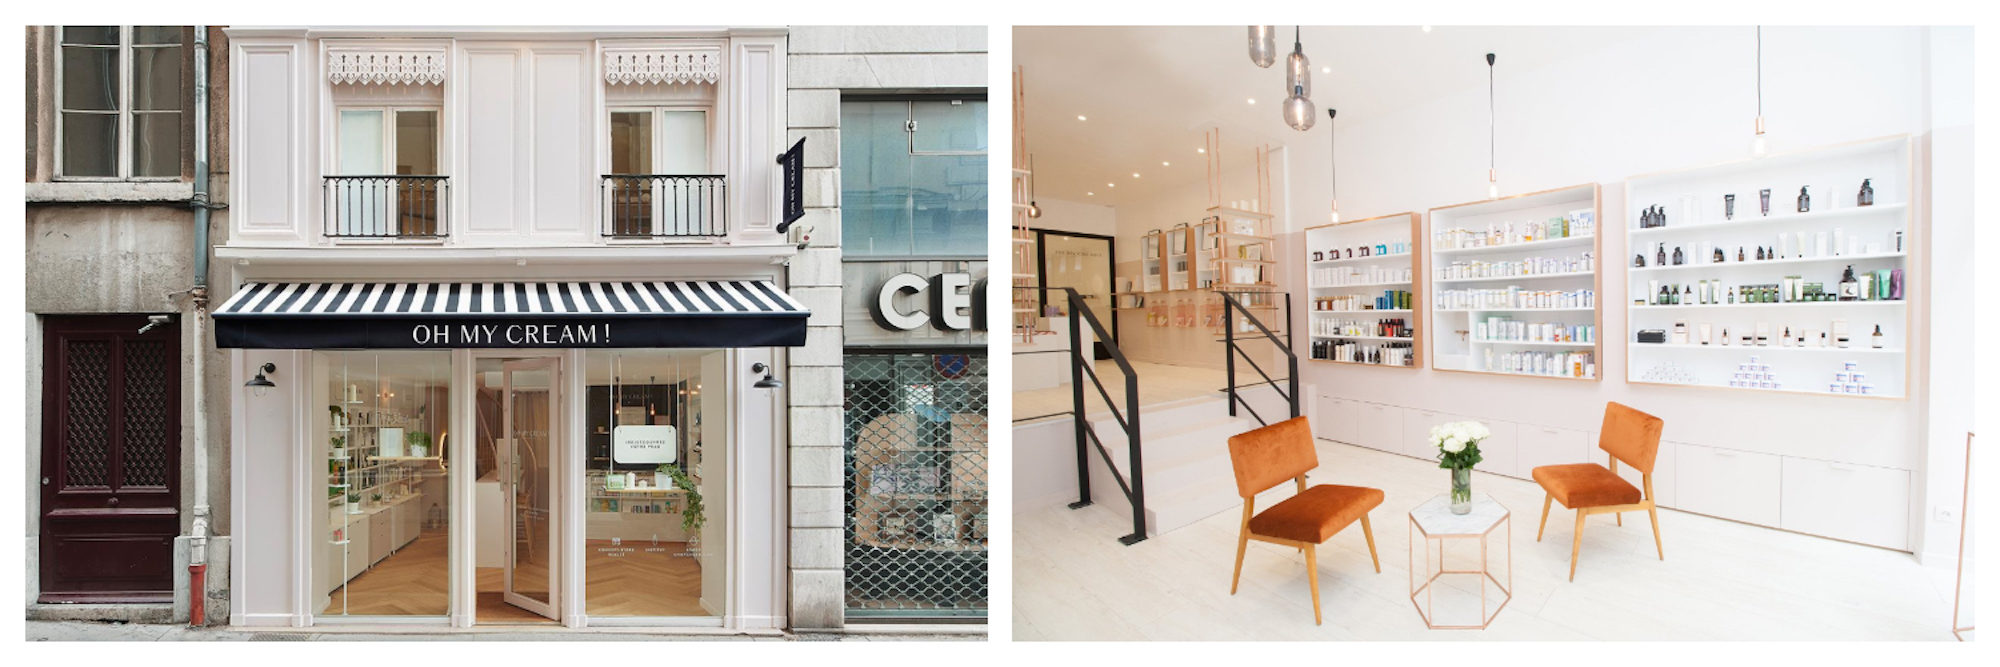 The facade of Oh My Cream! French beauty brand store in Paris and all over France (left). Inside our favorite store for natural, clean, and often organic beauty products all made in France (left).